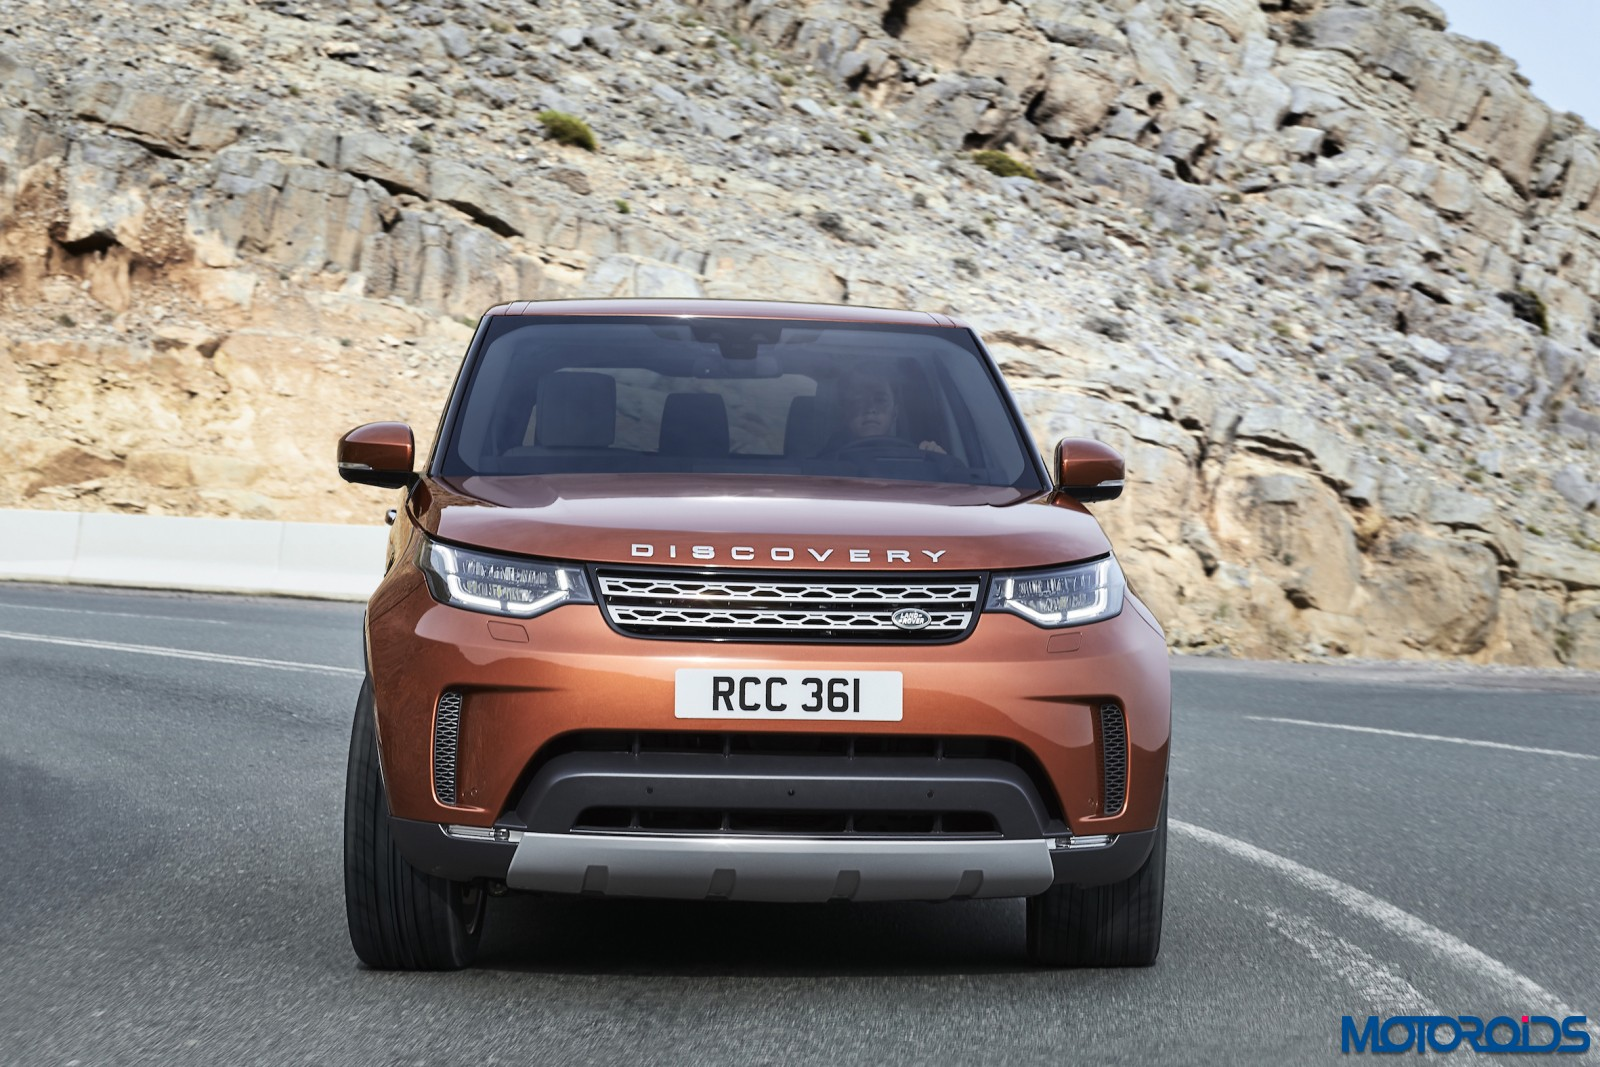 new 2017 land rover discovery features images video tech specs and prices motoroids. Black Bedroom Furniture Sets. Home Design Ideas